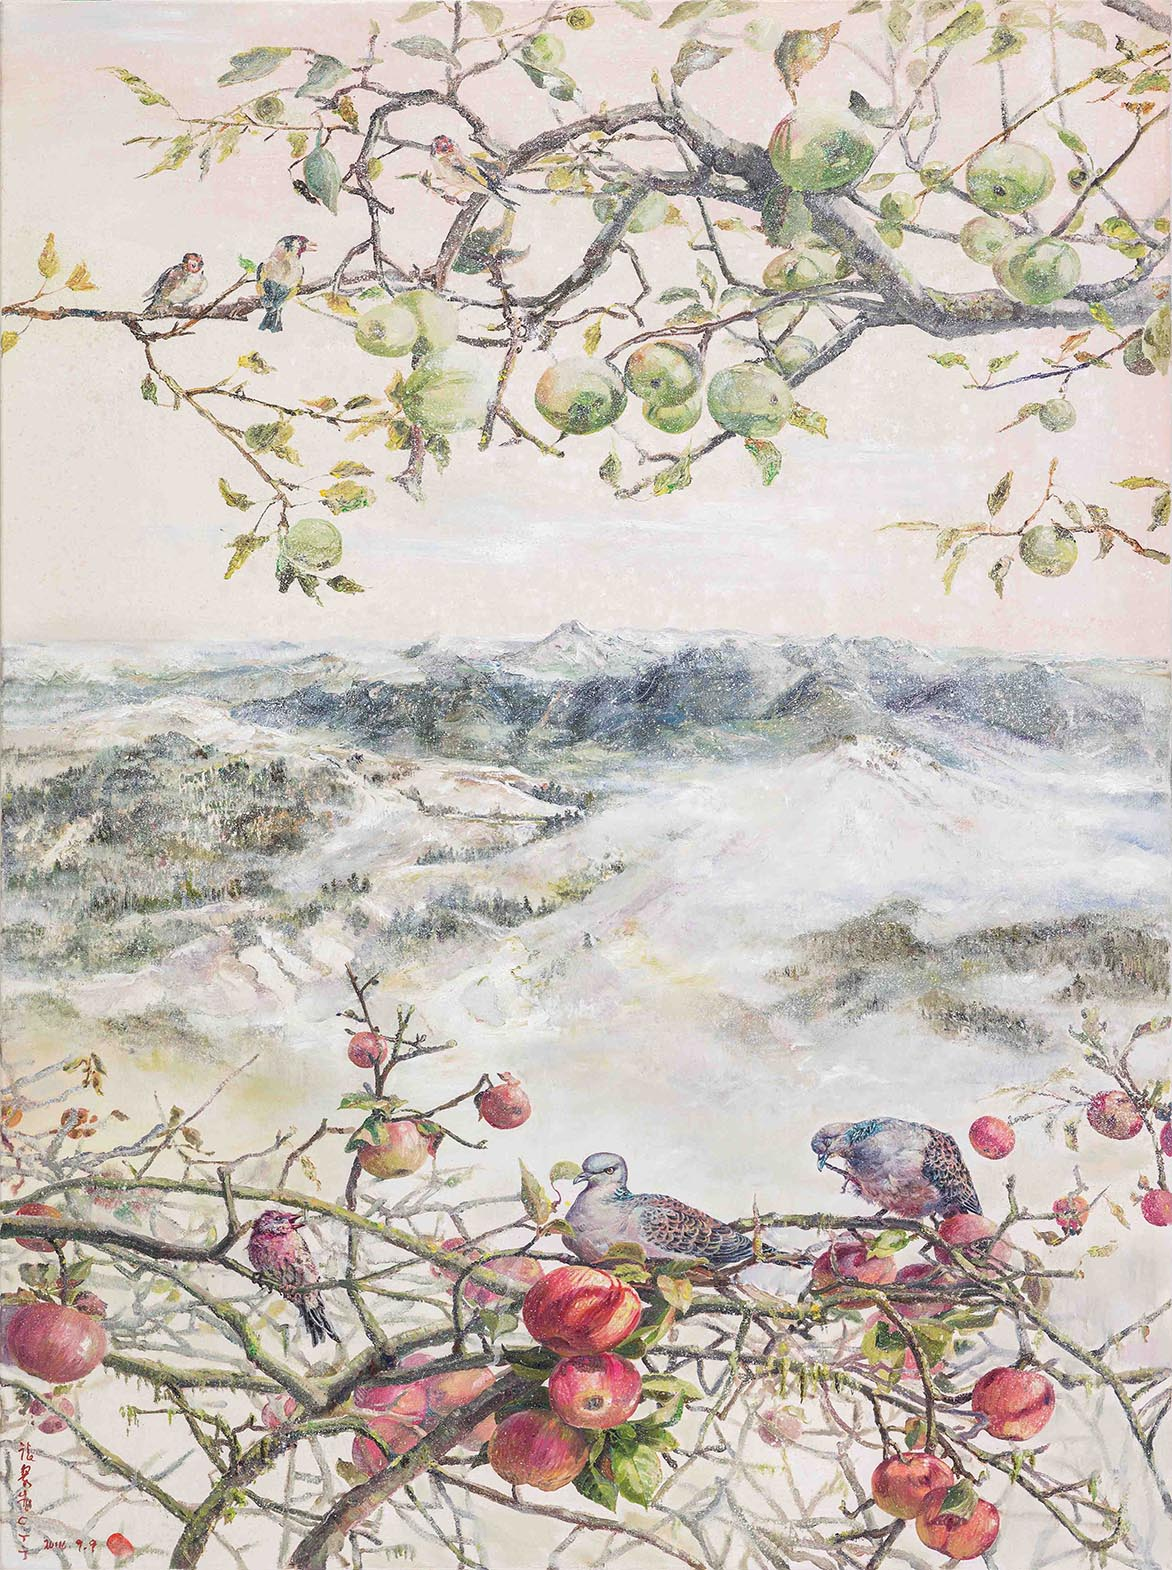 Apples Standing Steadily in Winter Mixed media on linen 130.3×97.3cm (60F)